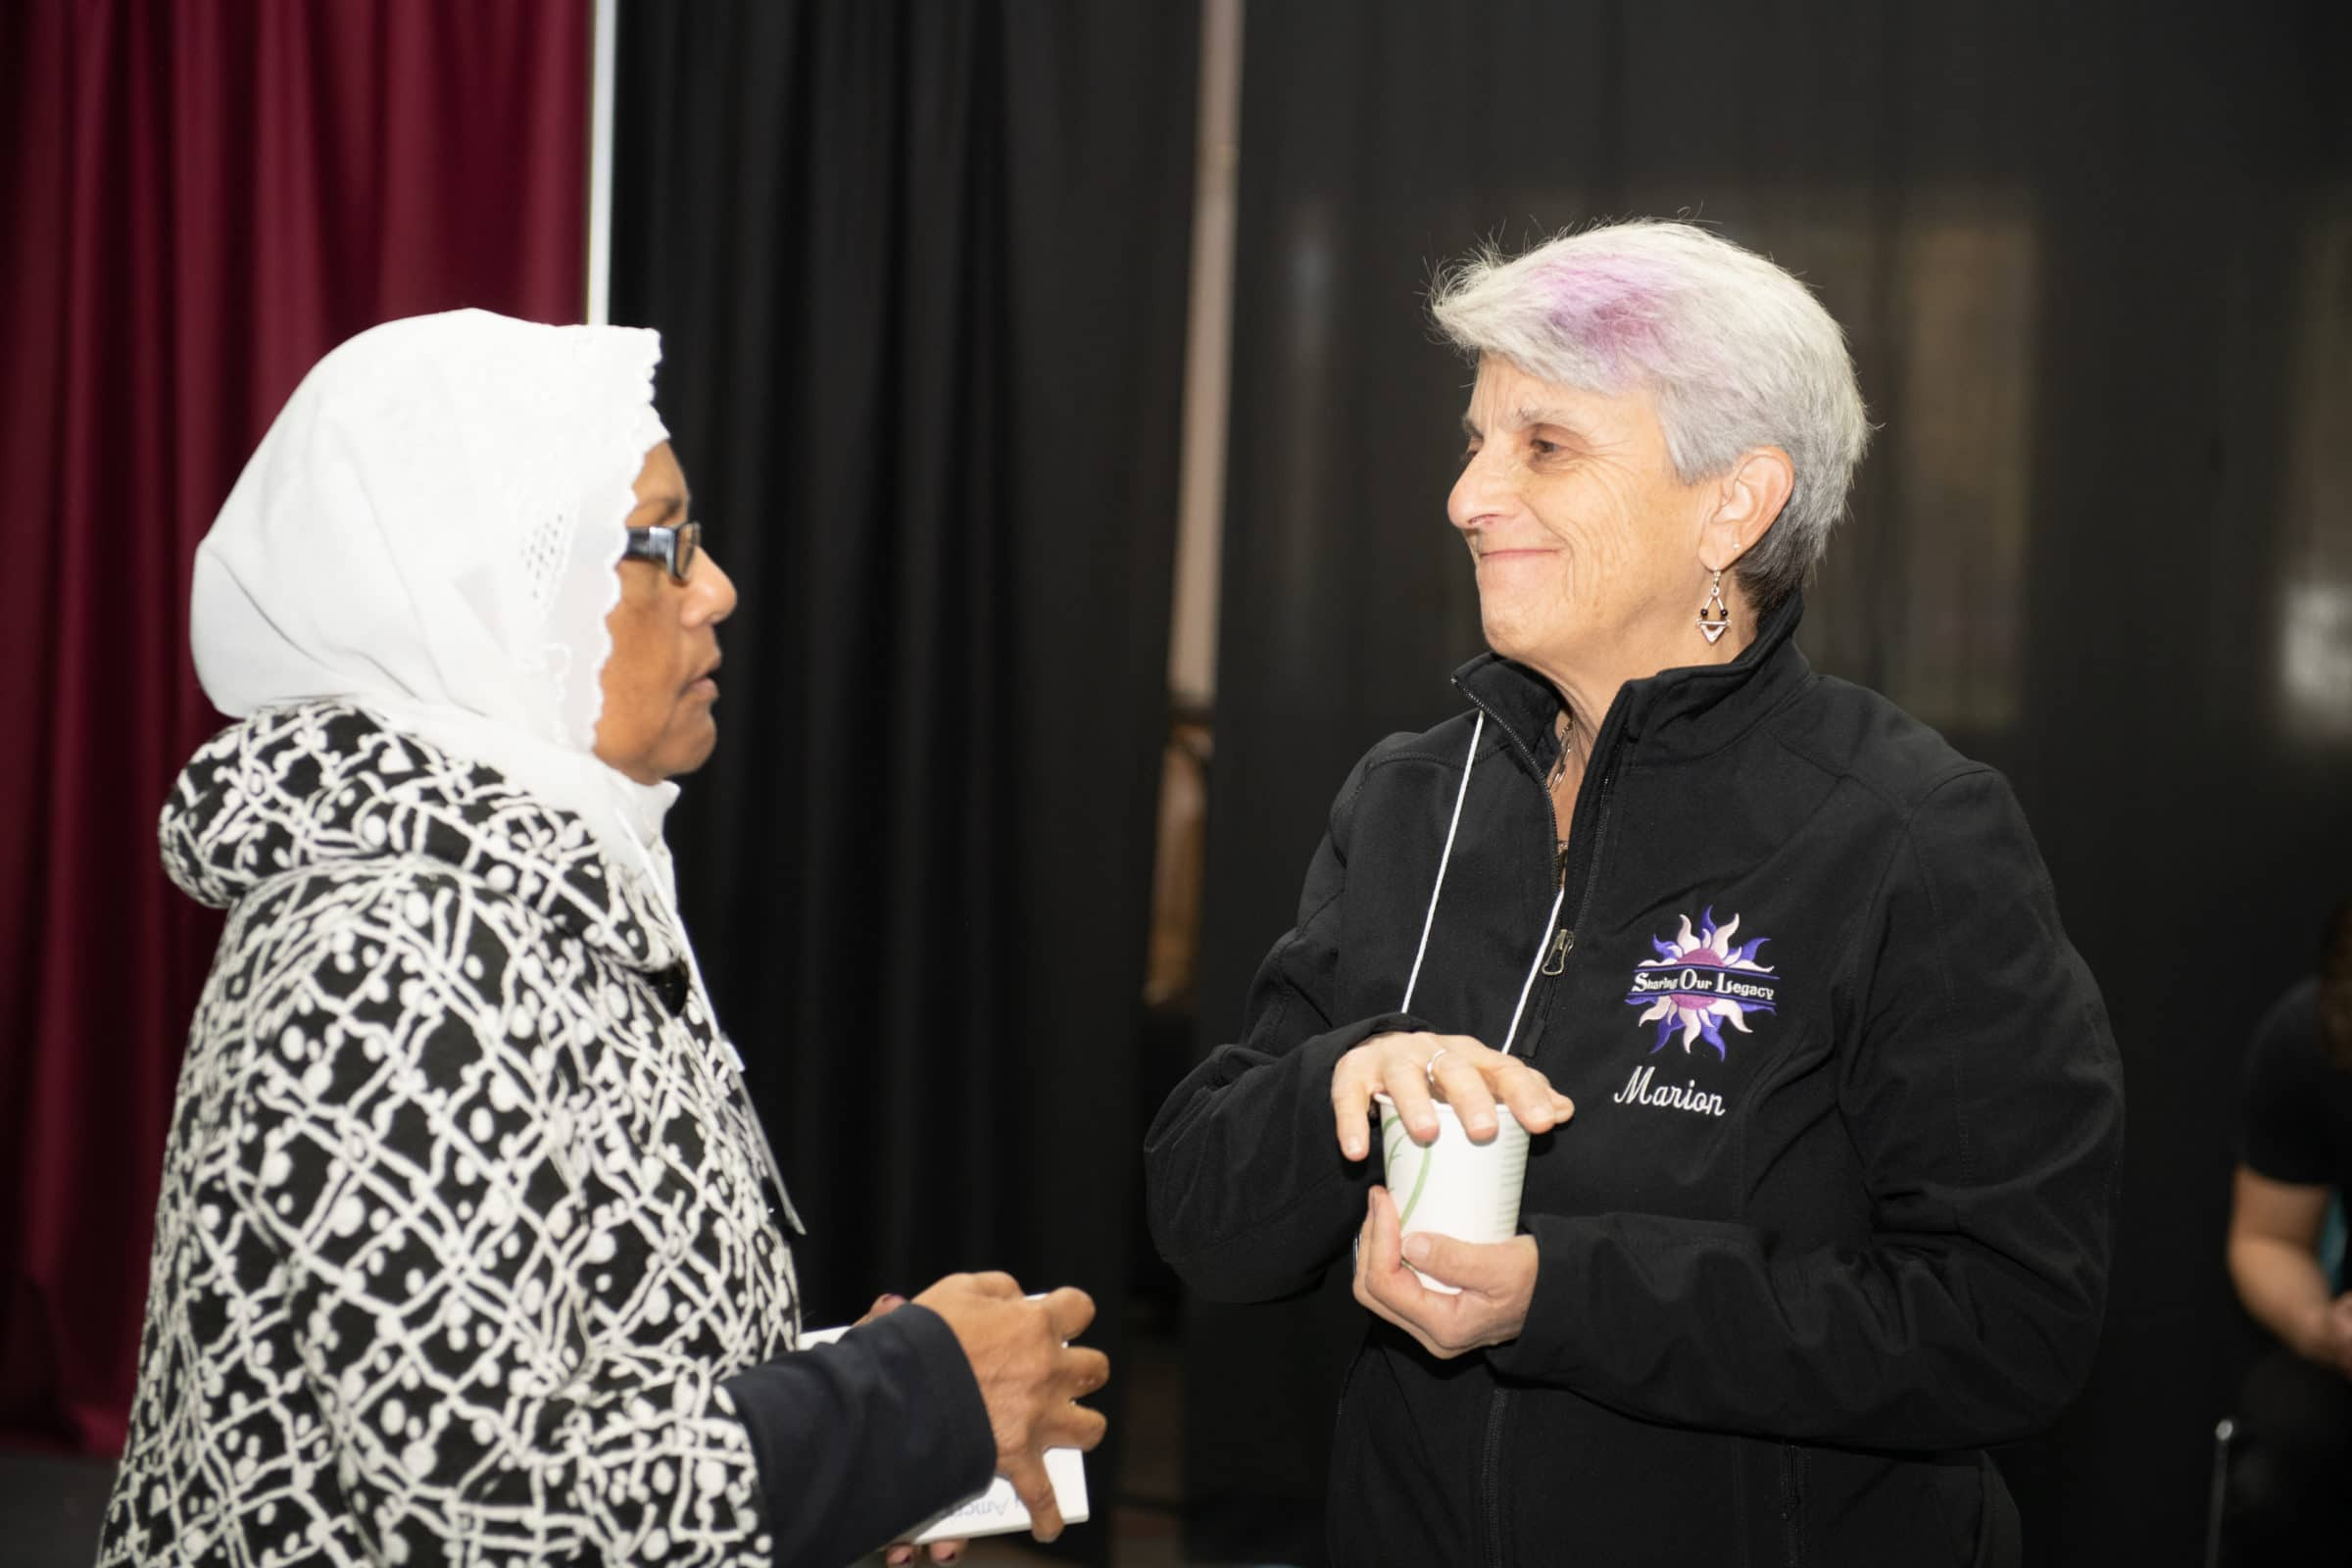 woman in hijab speaking to woman with purple streak in hair